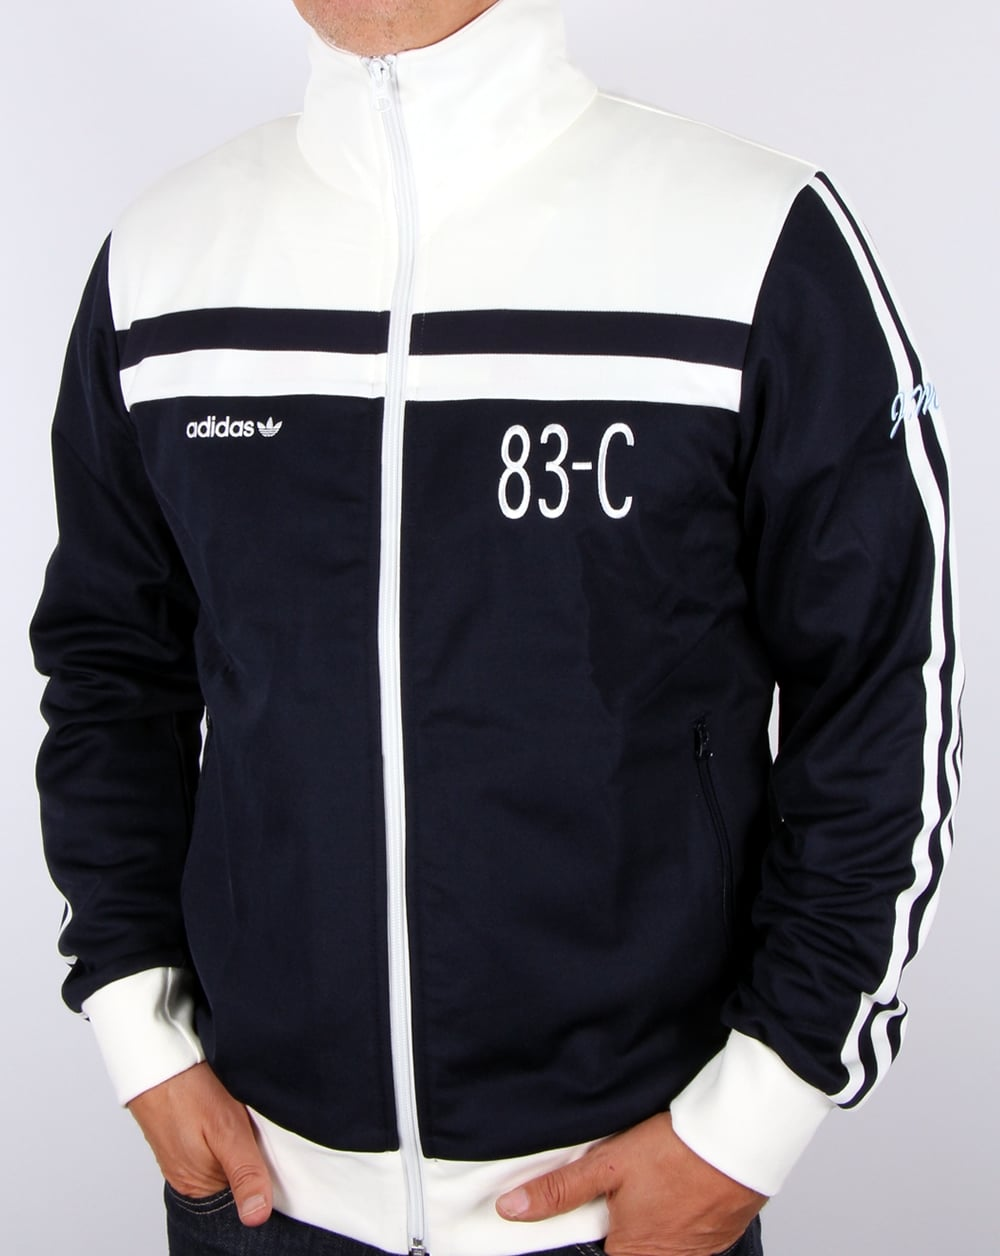 Adidas Originals 83 C Track Top Navy Off White Tracksuit